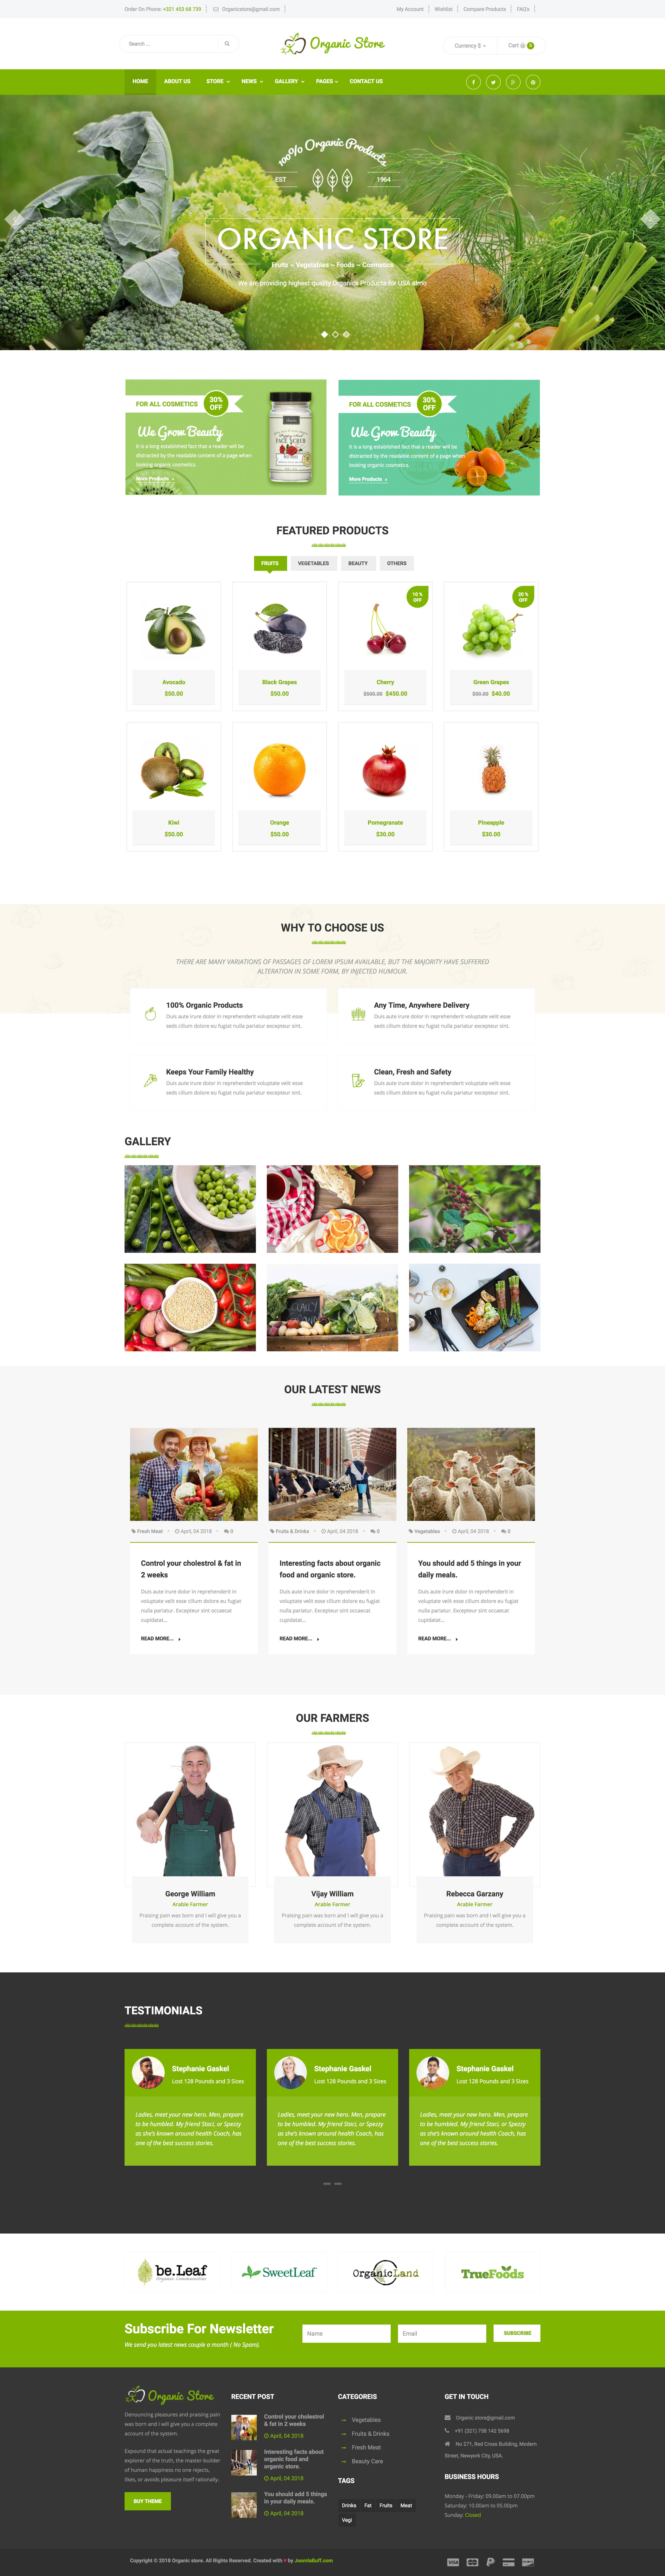 Organicstore - Joomla eCommerce template for Organic food products